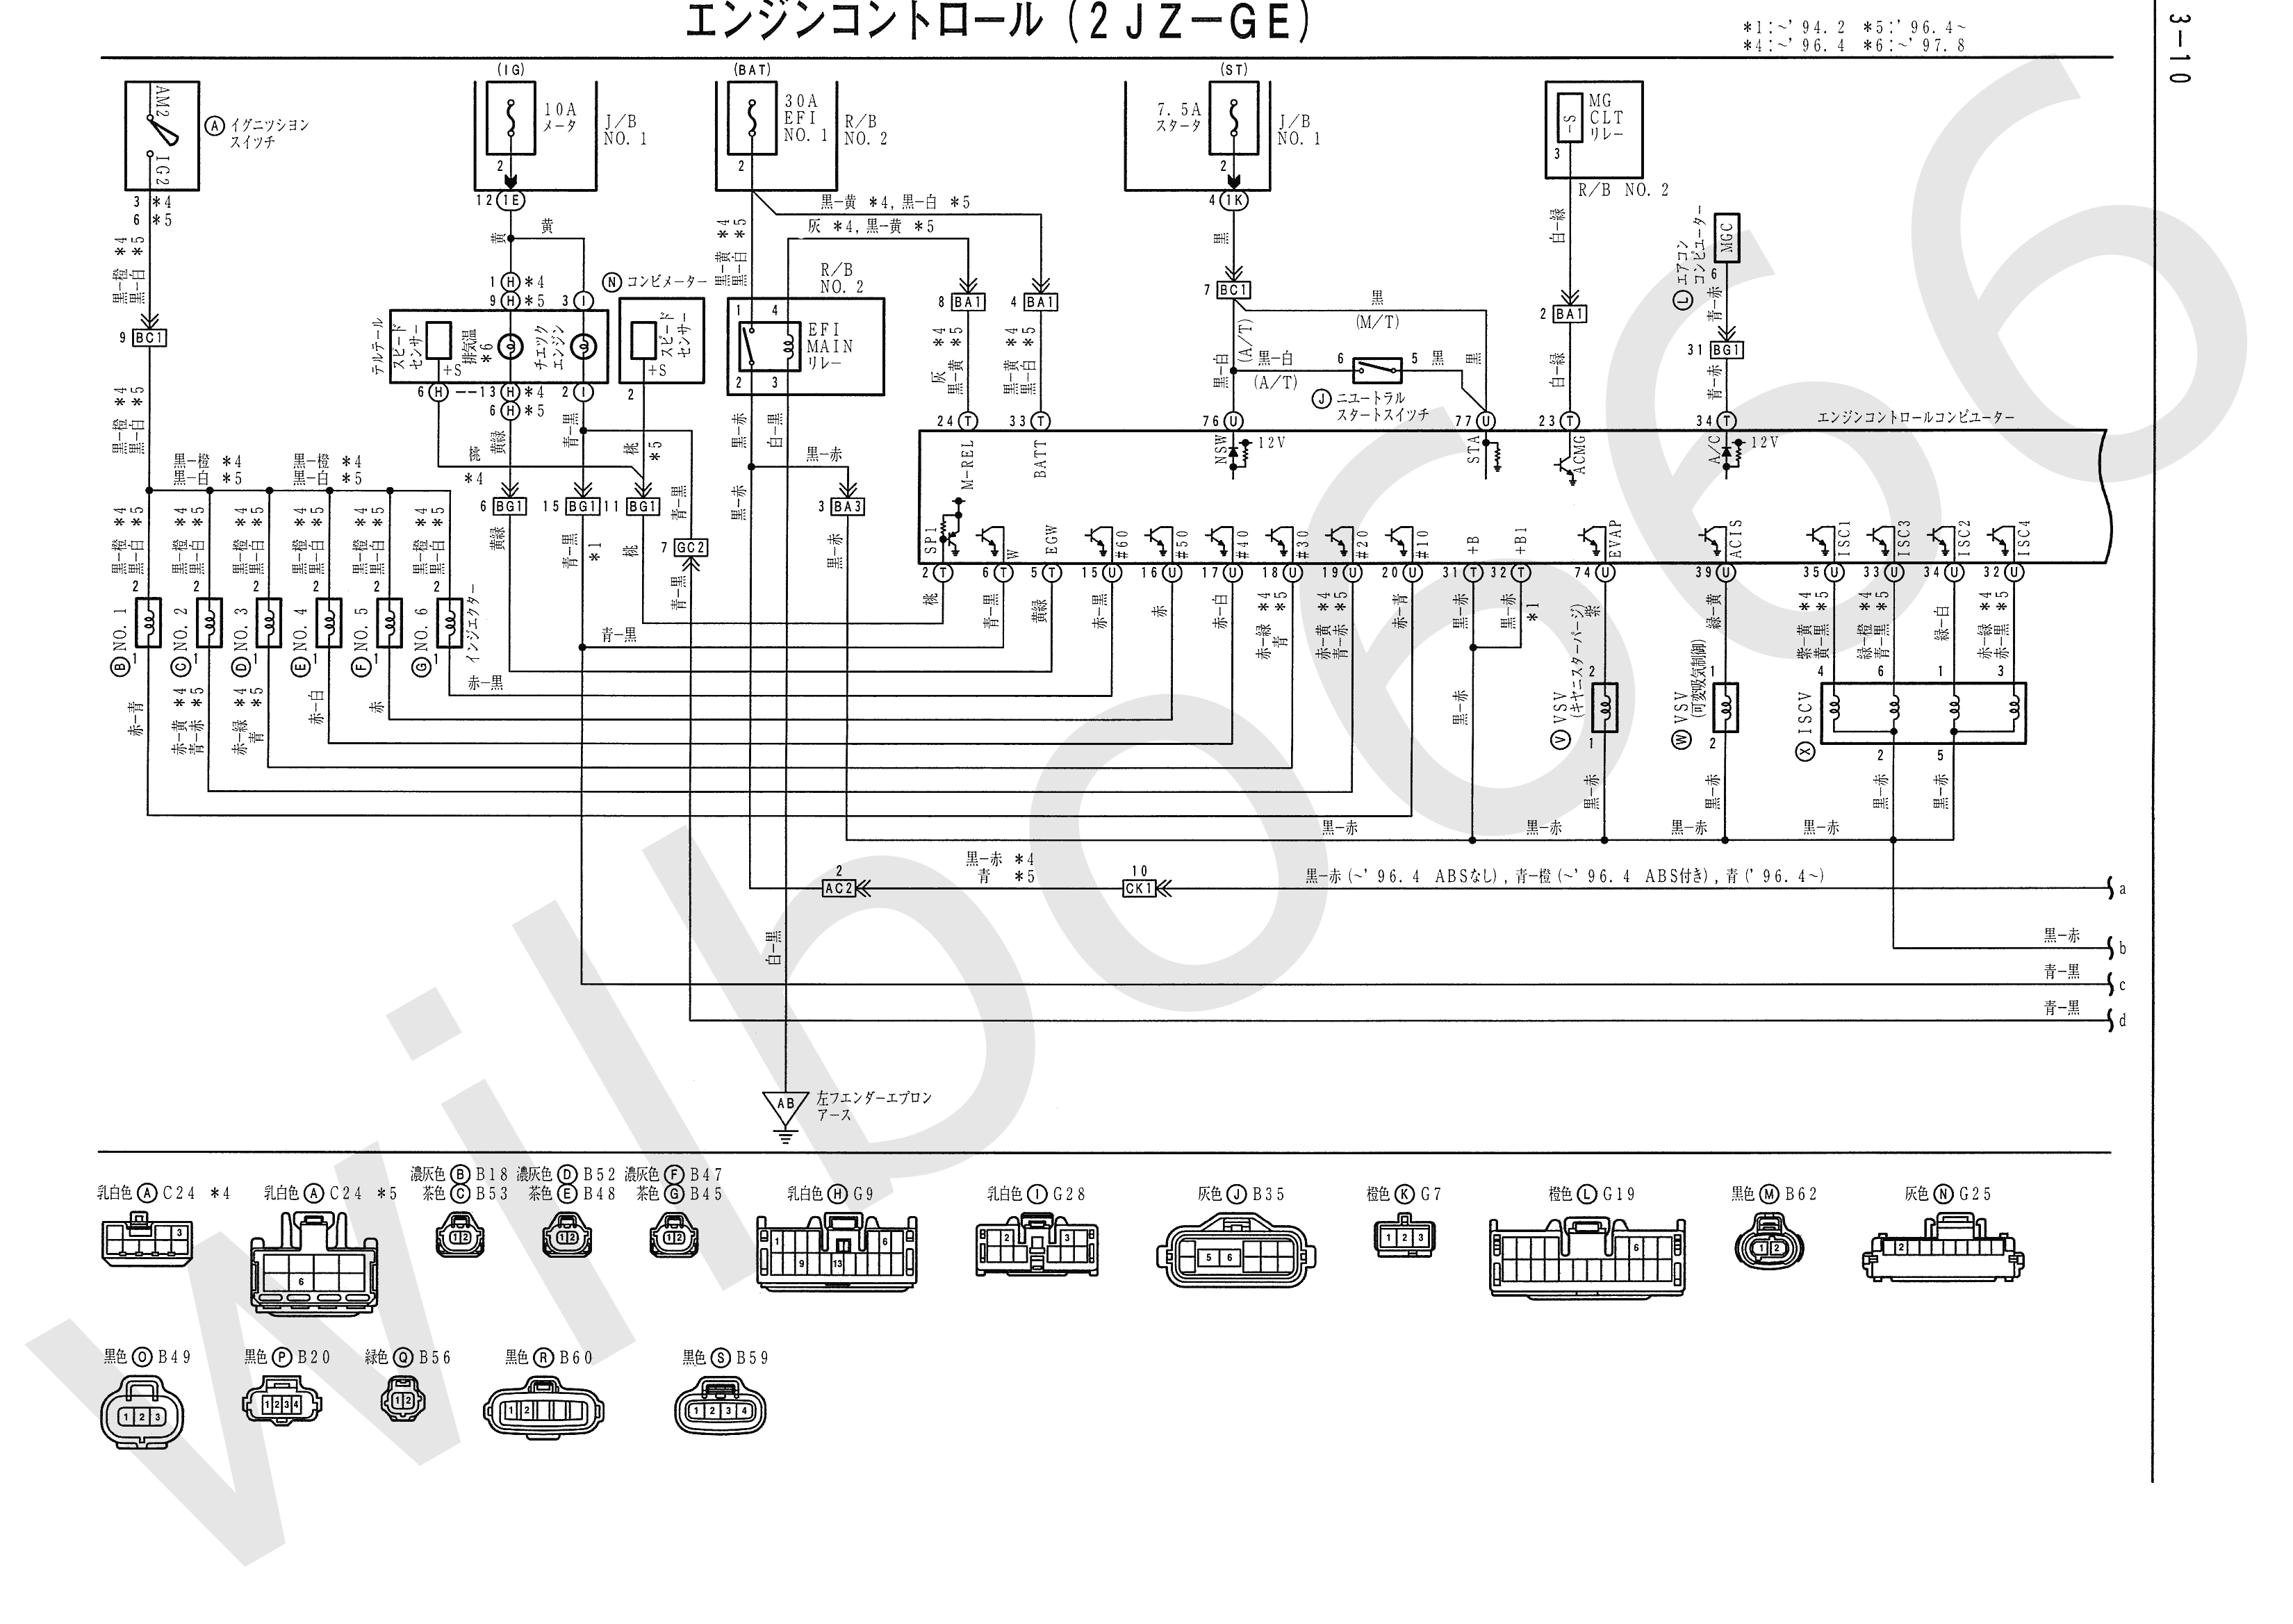 JZA80 Electrical Wiring Diagram 6742505 3 10 wilbo666 2jz ge jza80 supra engine wiring ge wiring diagrams at virtualis.co